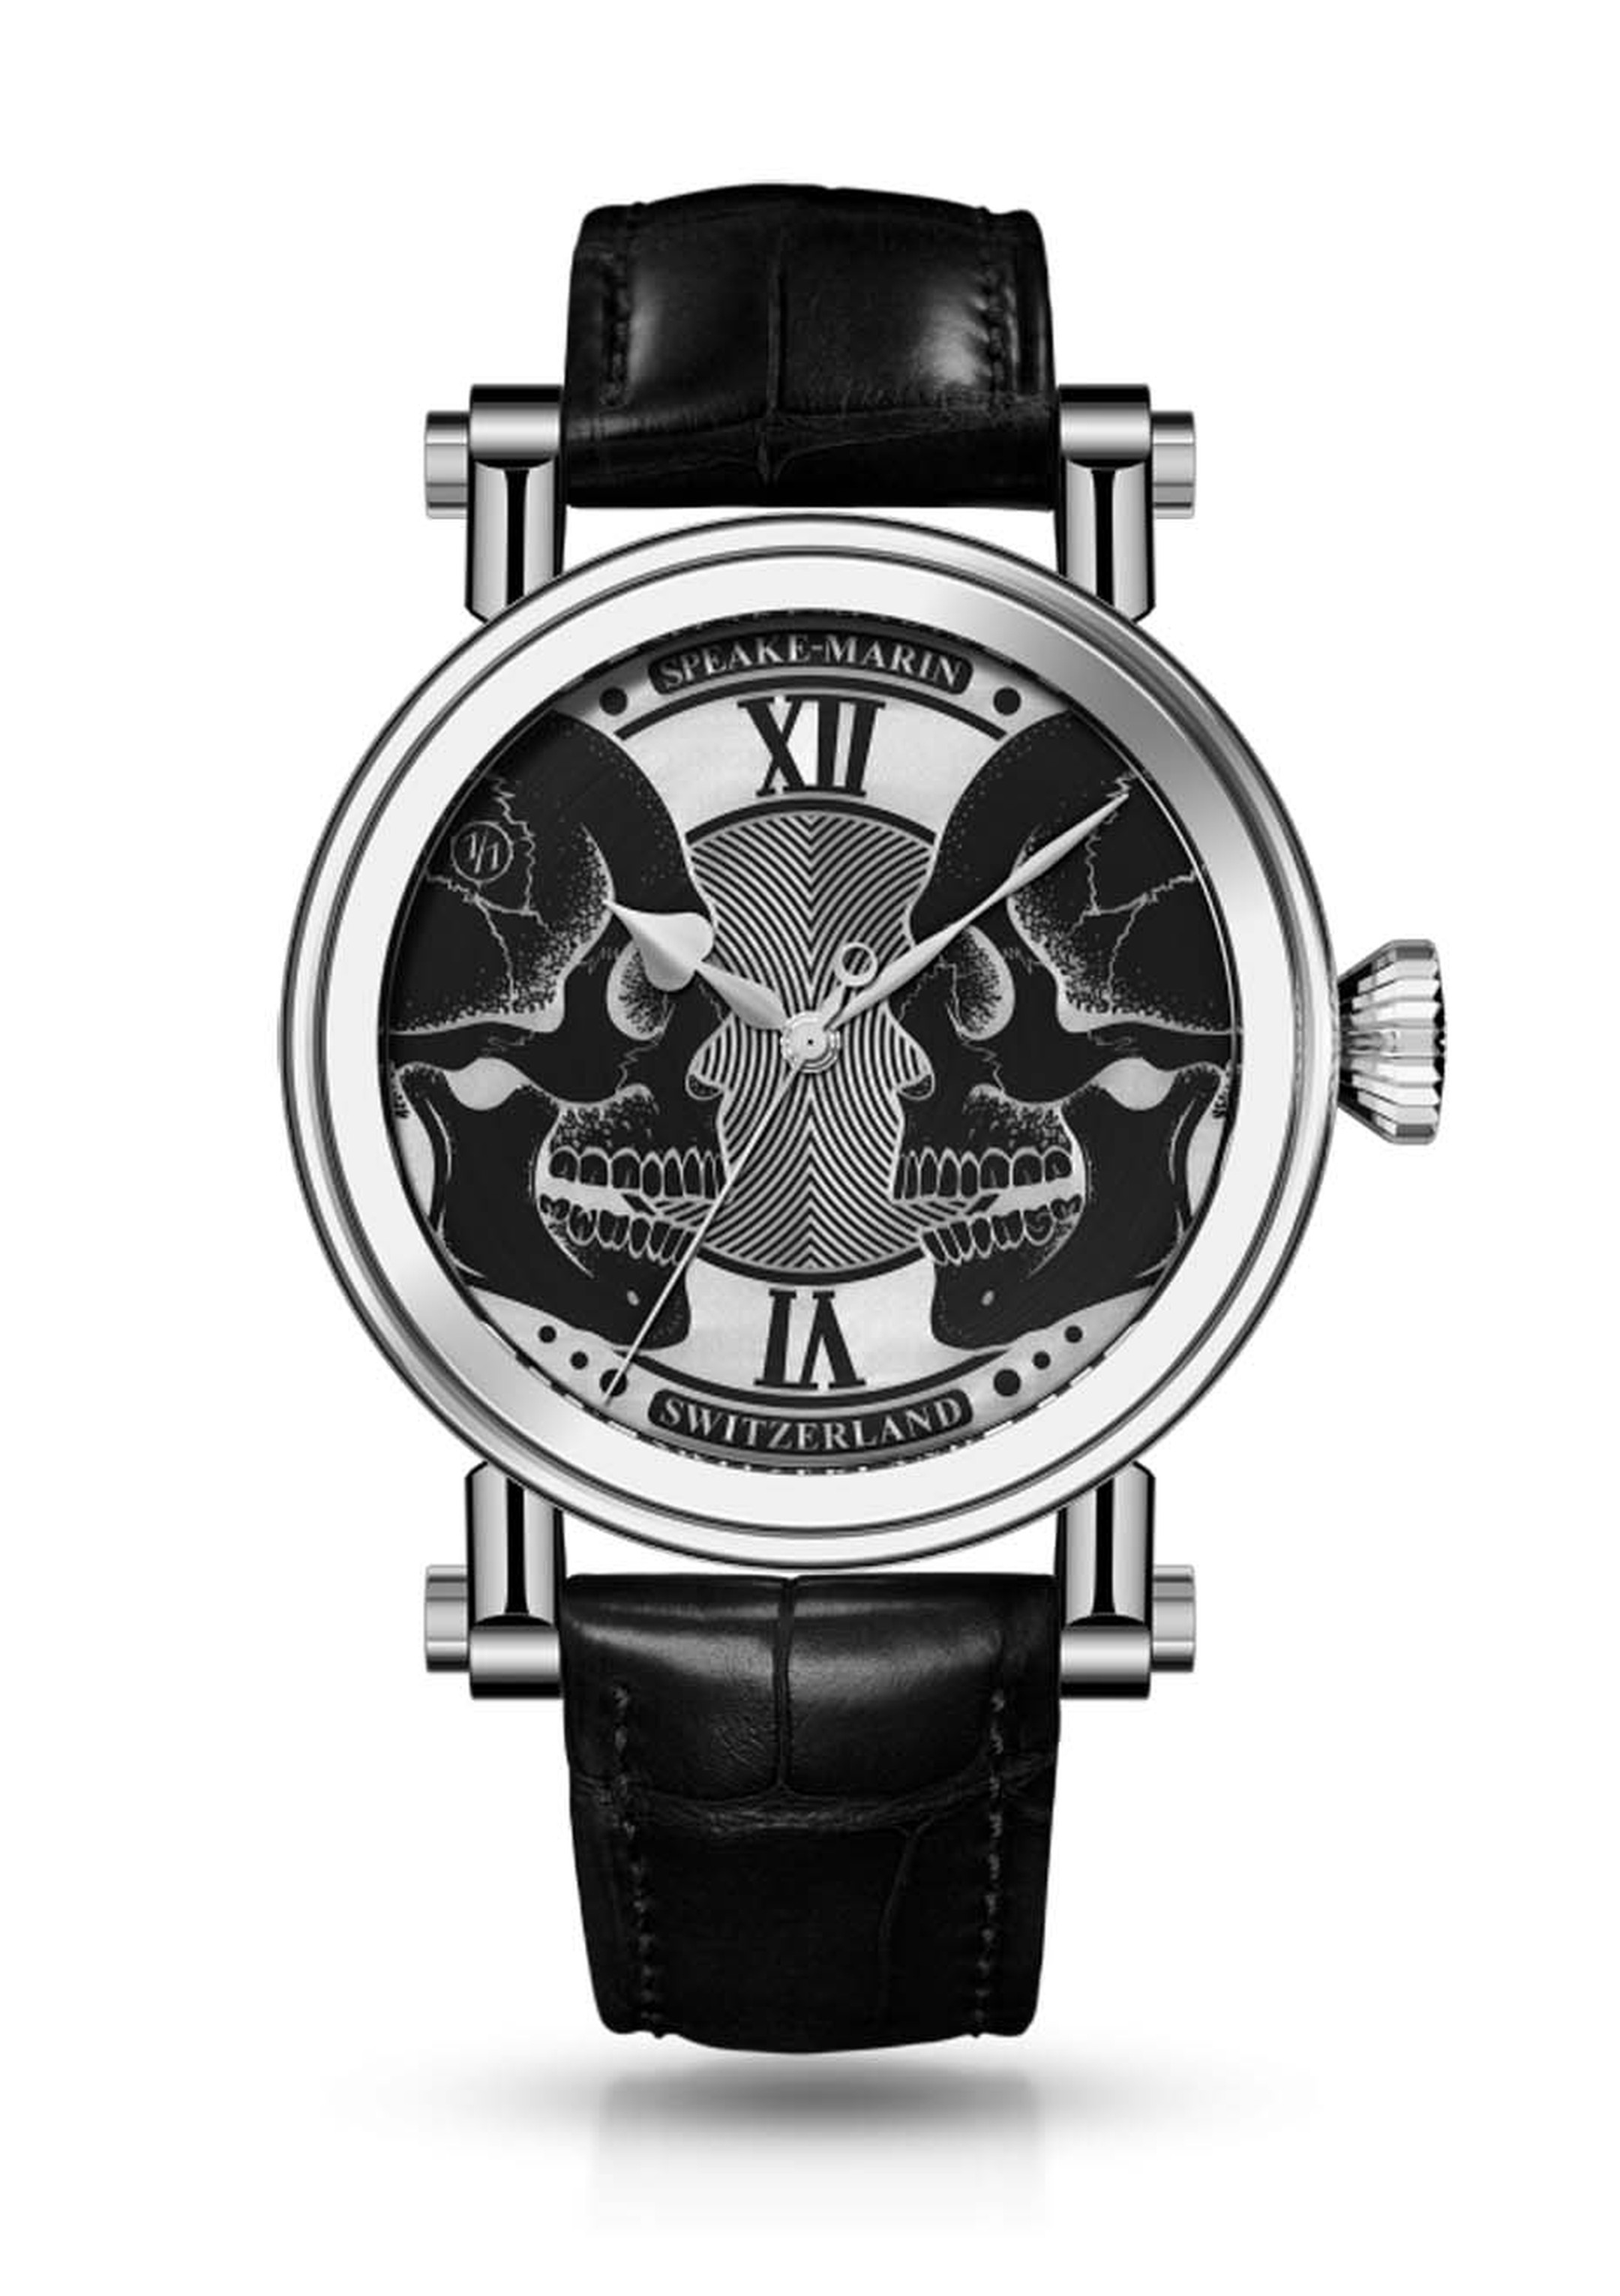 Speake Marin's Face to Face double skull watch is an ideal everyday memento mori featuring classical skulls artfully etched on the dial with an innovative chemical technique.